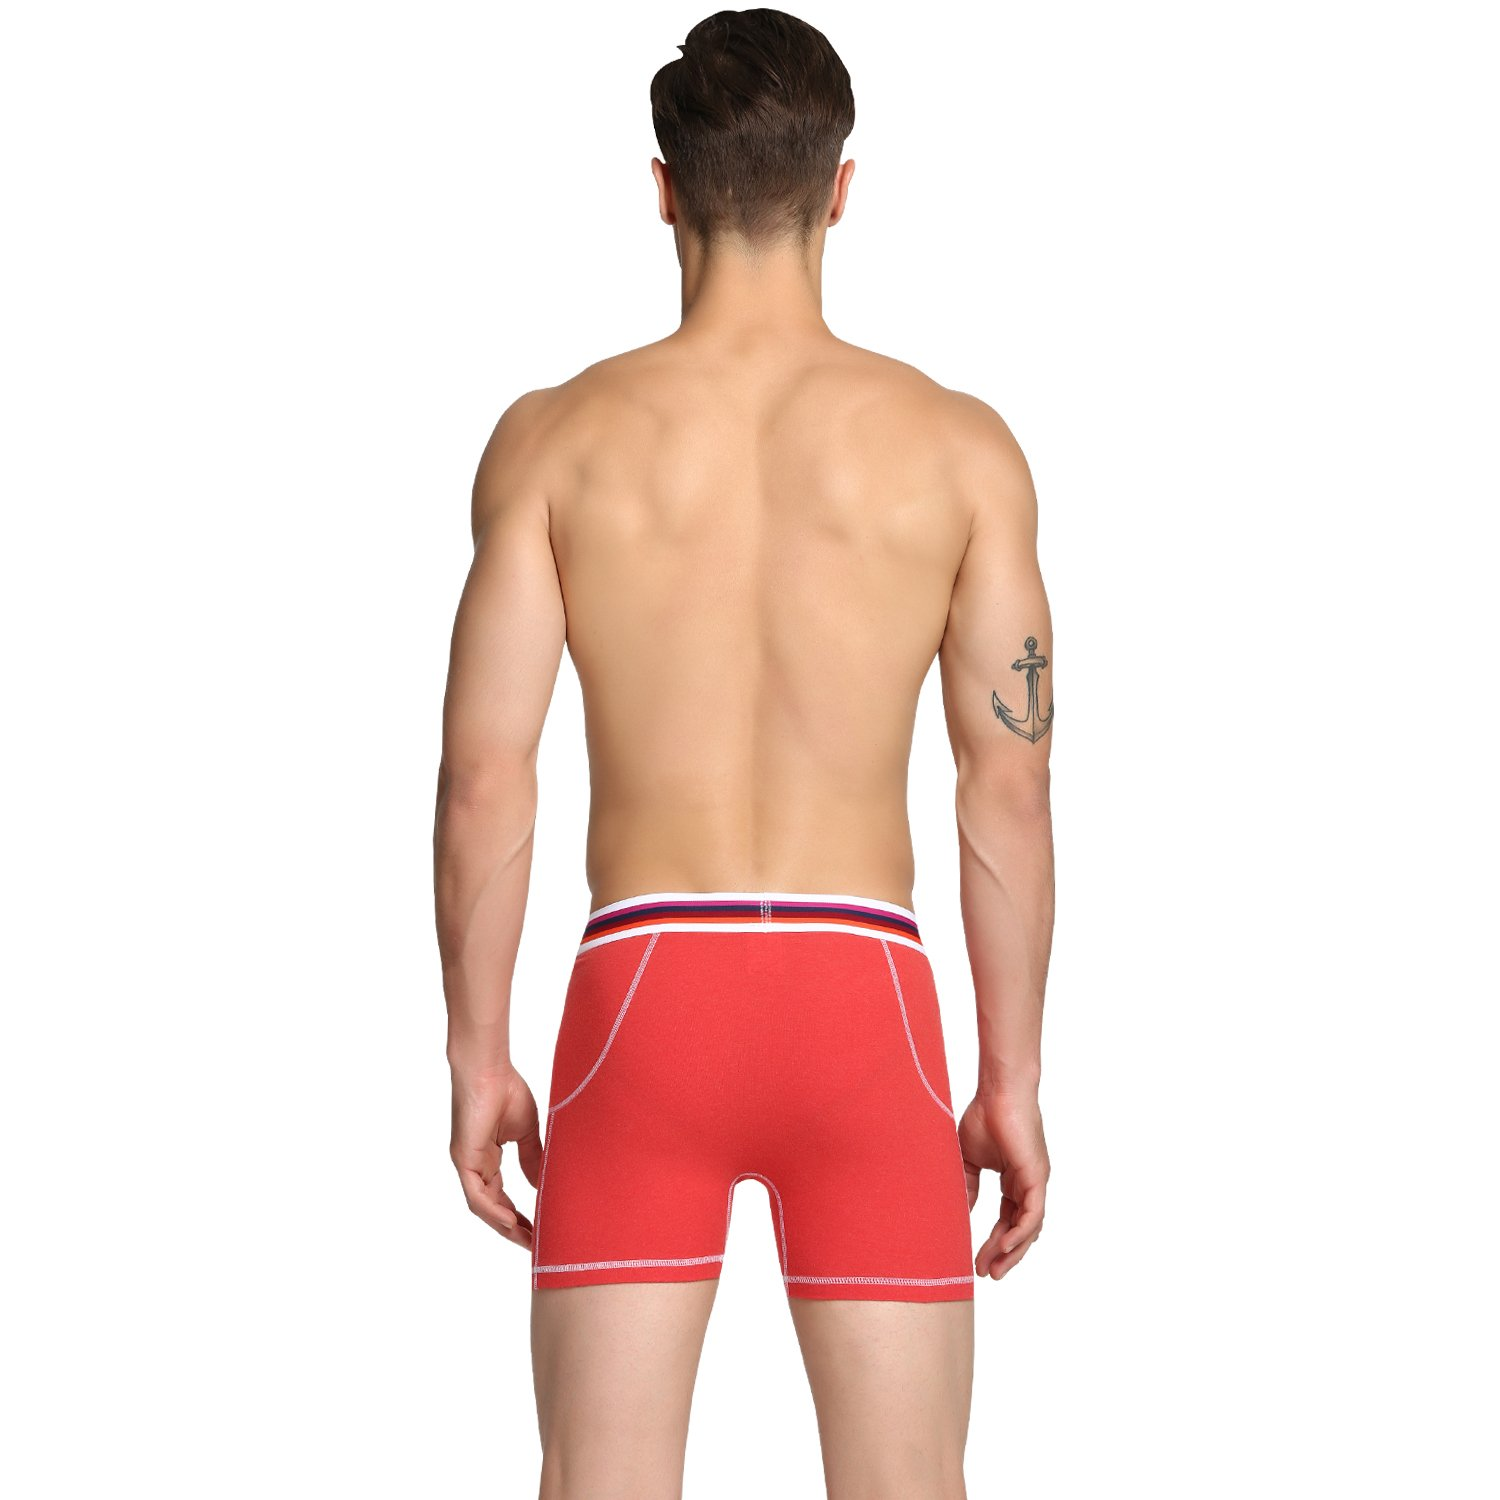 FBA Nuofengkudu Mens Soft Cotton Boxer Briefs Classic Underwear No Ride Up